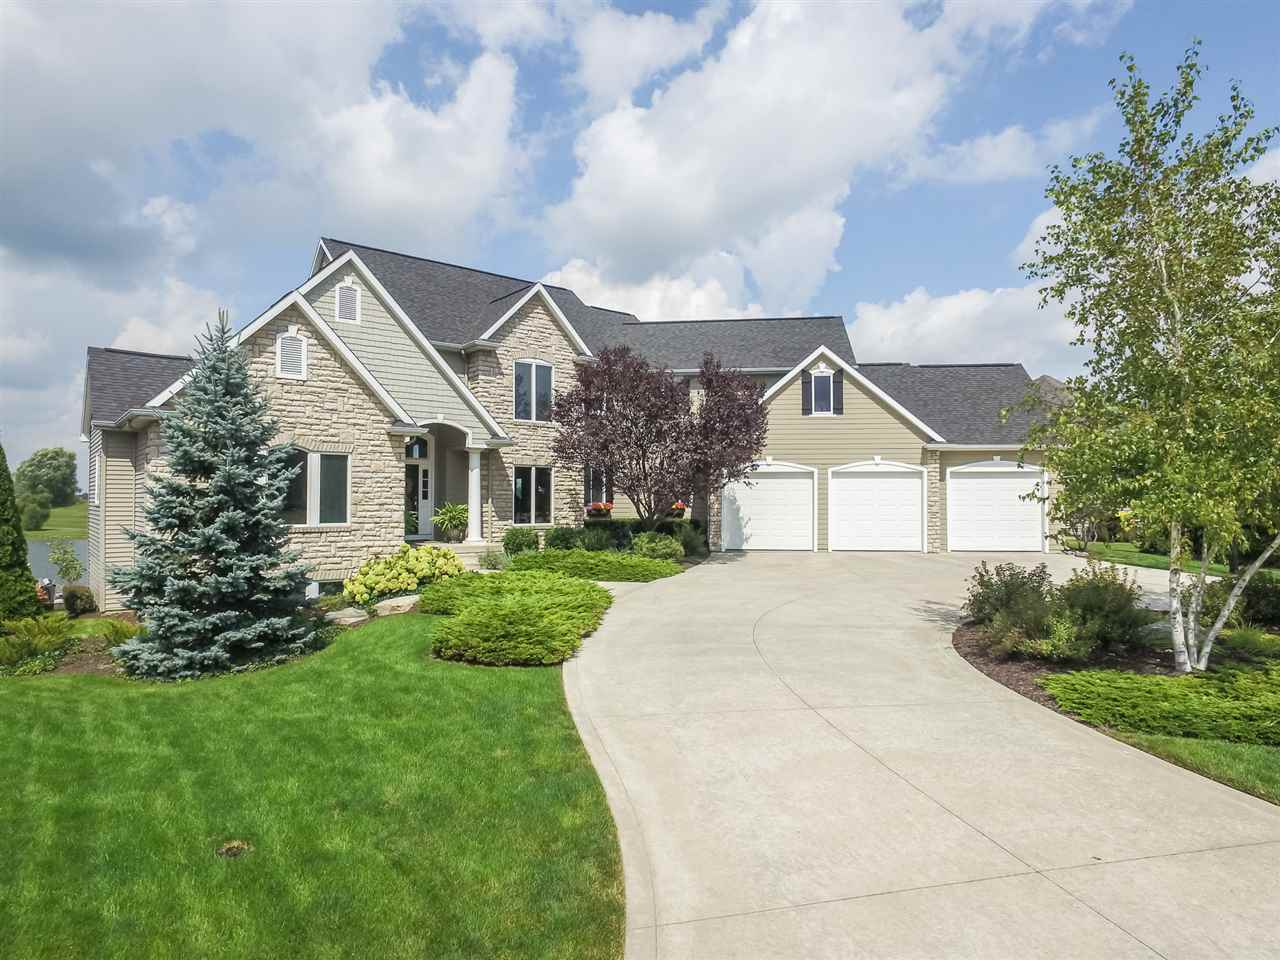 12122 Fairway Winds Court, Fort Wayne, IN 46814